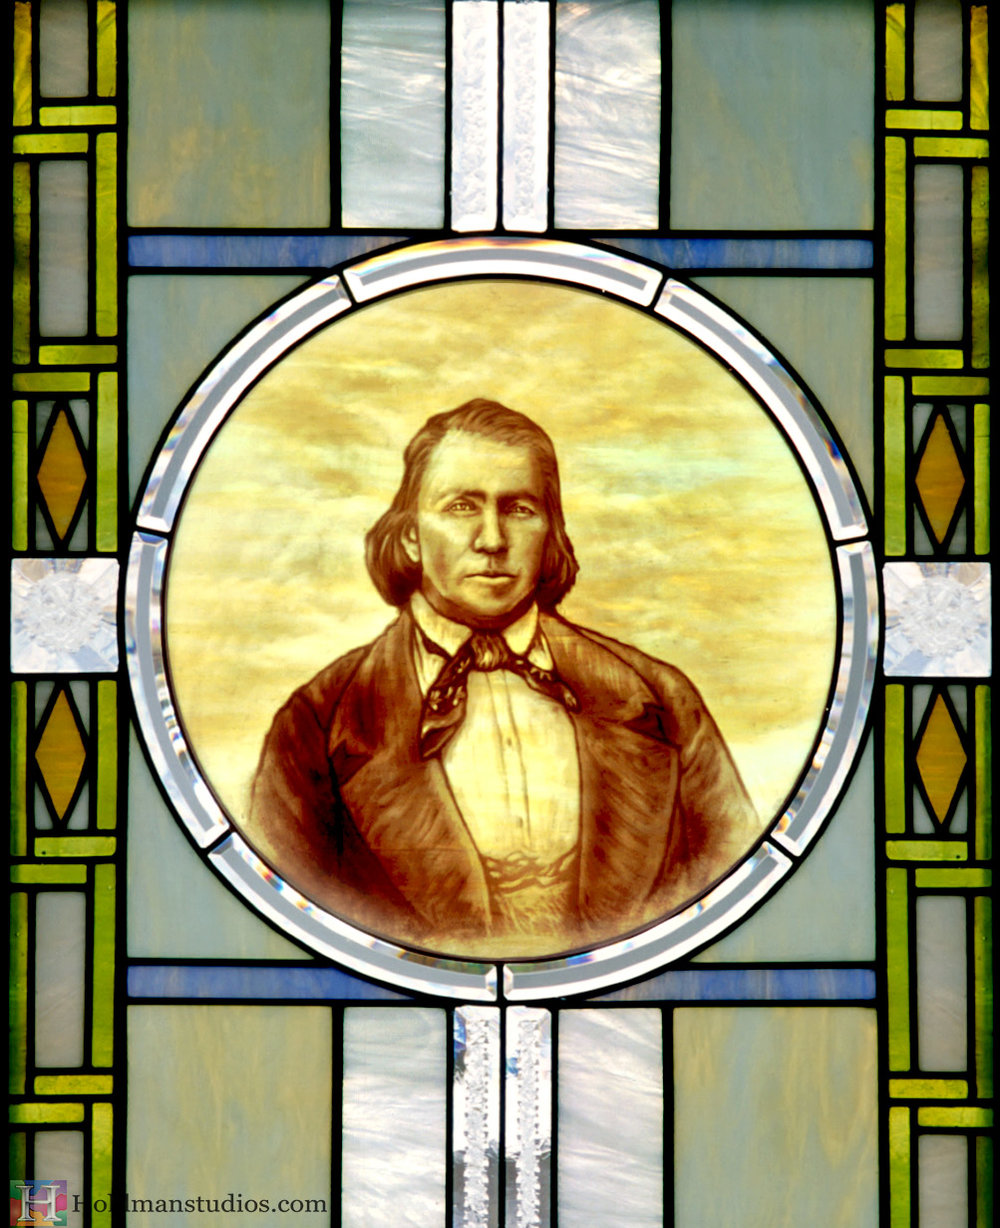 Holdman-Studios-Stained-Art-Glass-LDS-Mormon-Temple-Winter-Quarters-Omaha-Nebraska-Pioneer-Window-Brigham-Young-Crop.jpg